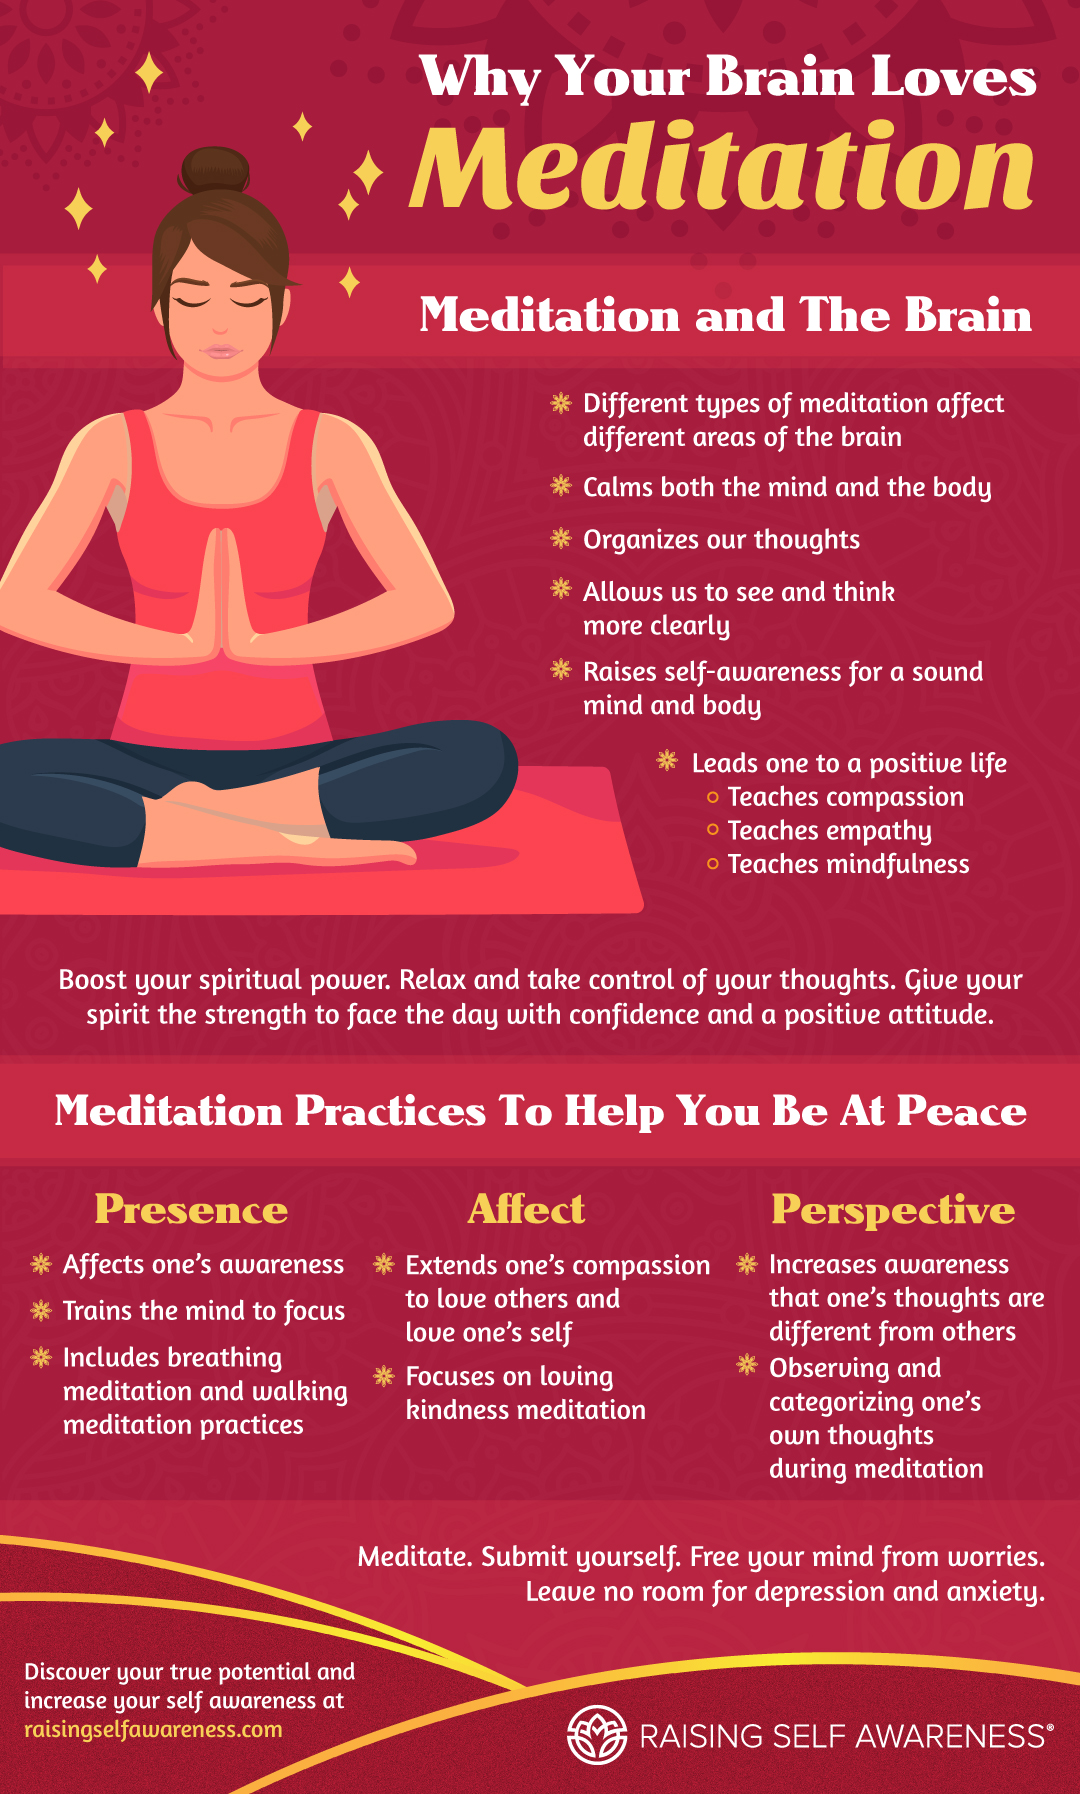 Why your Brain Loves Meditation